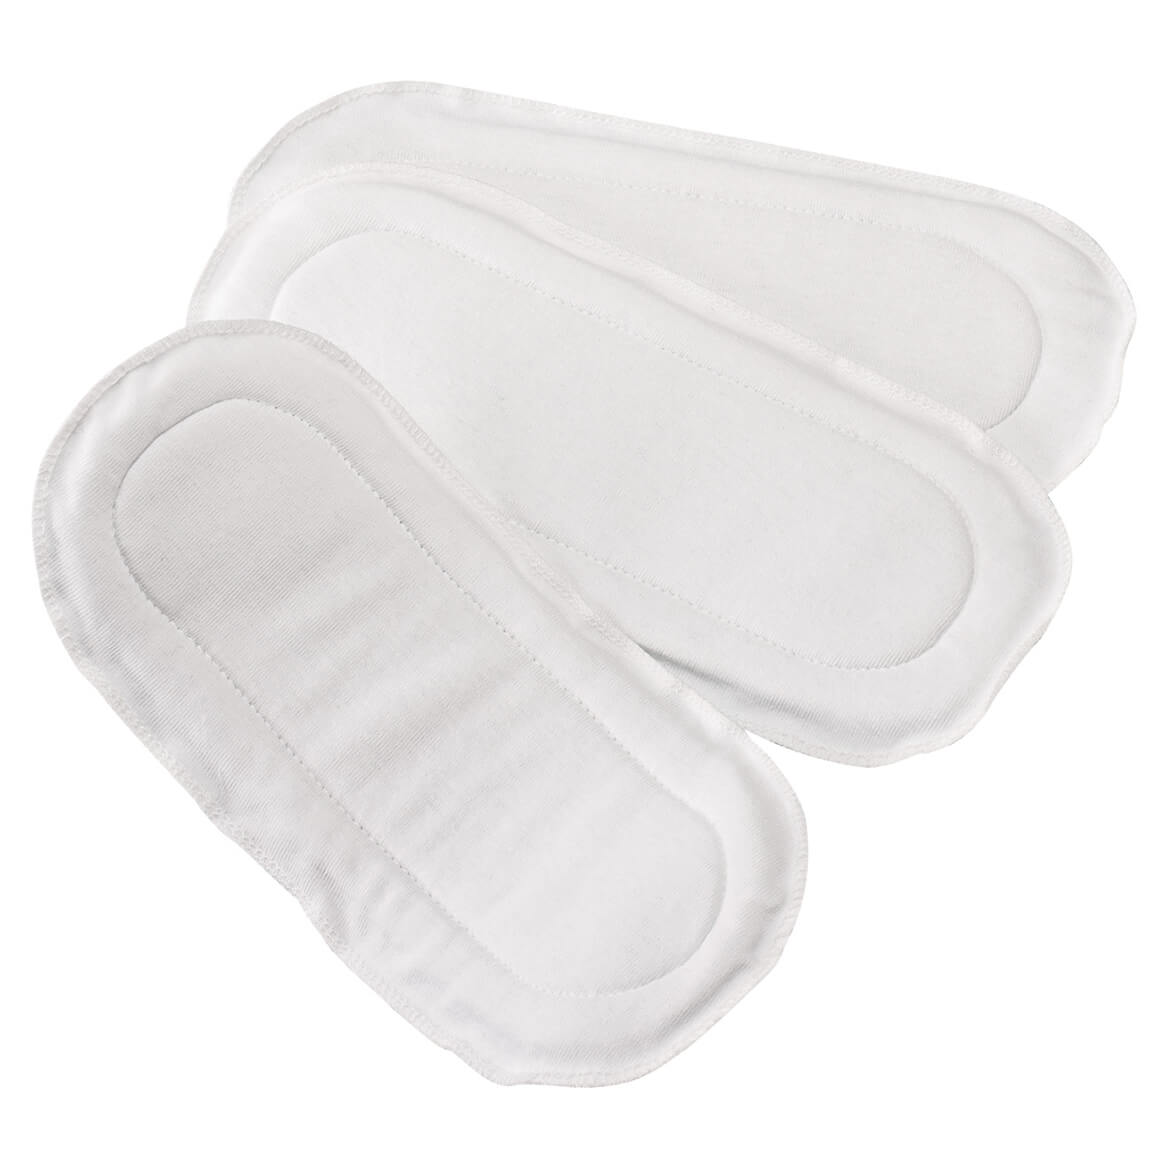 Reusable Incontinence Pads Set of 3-340678